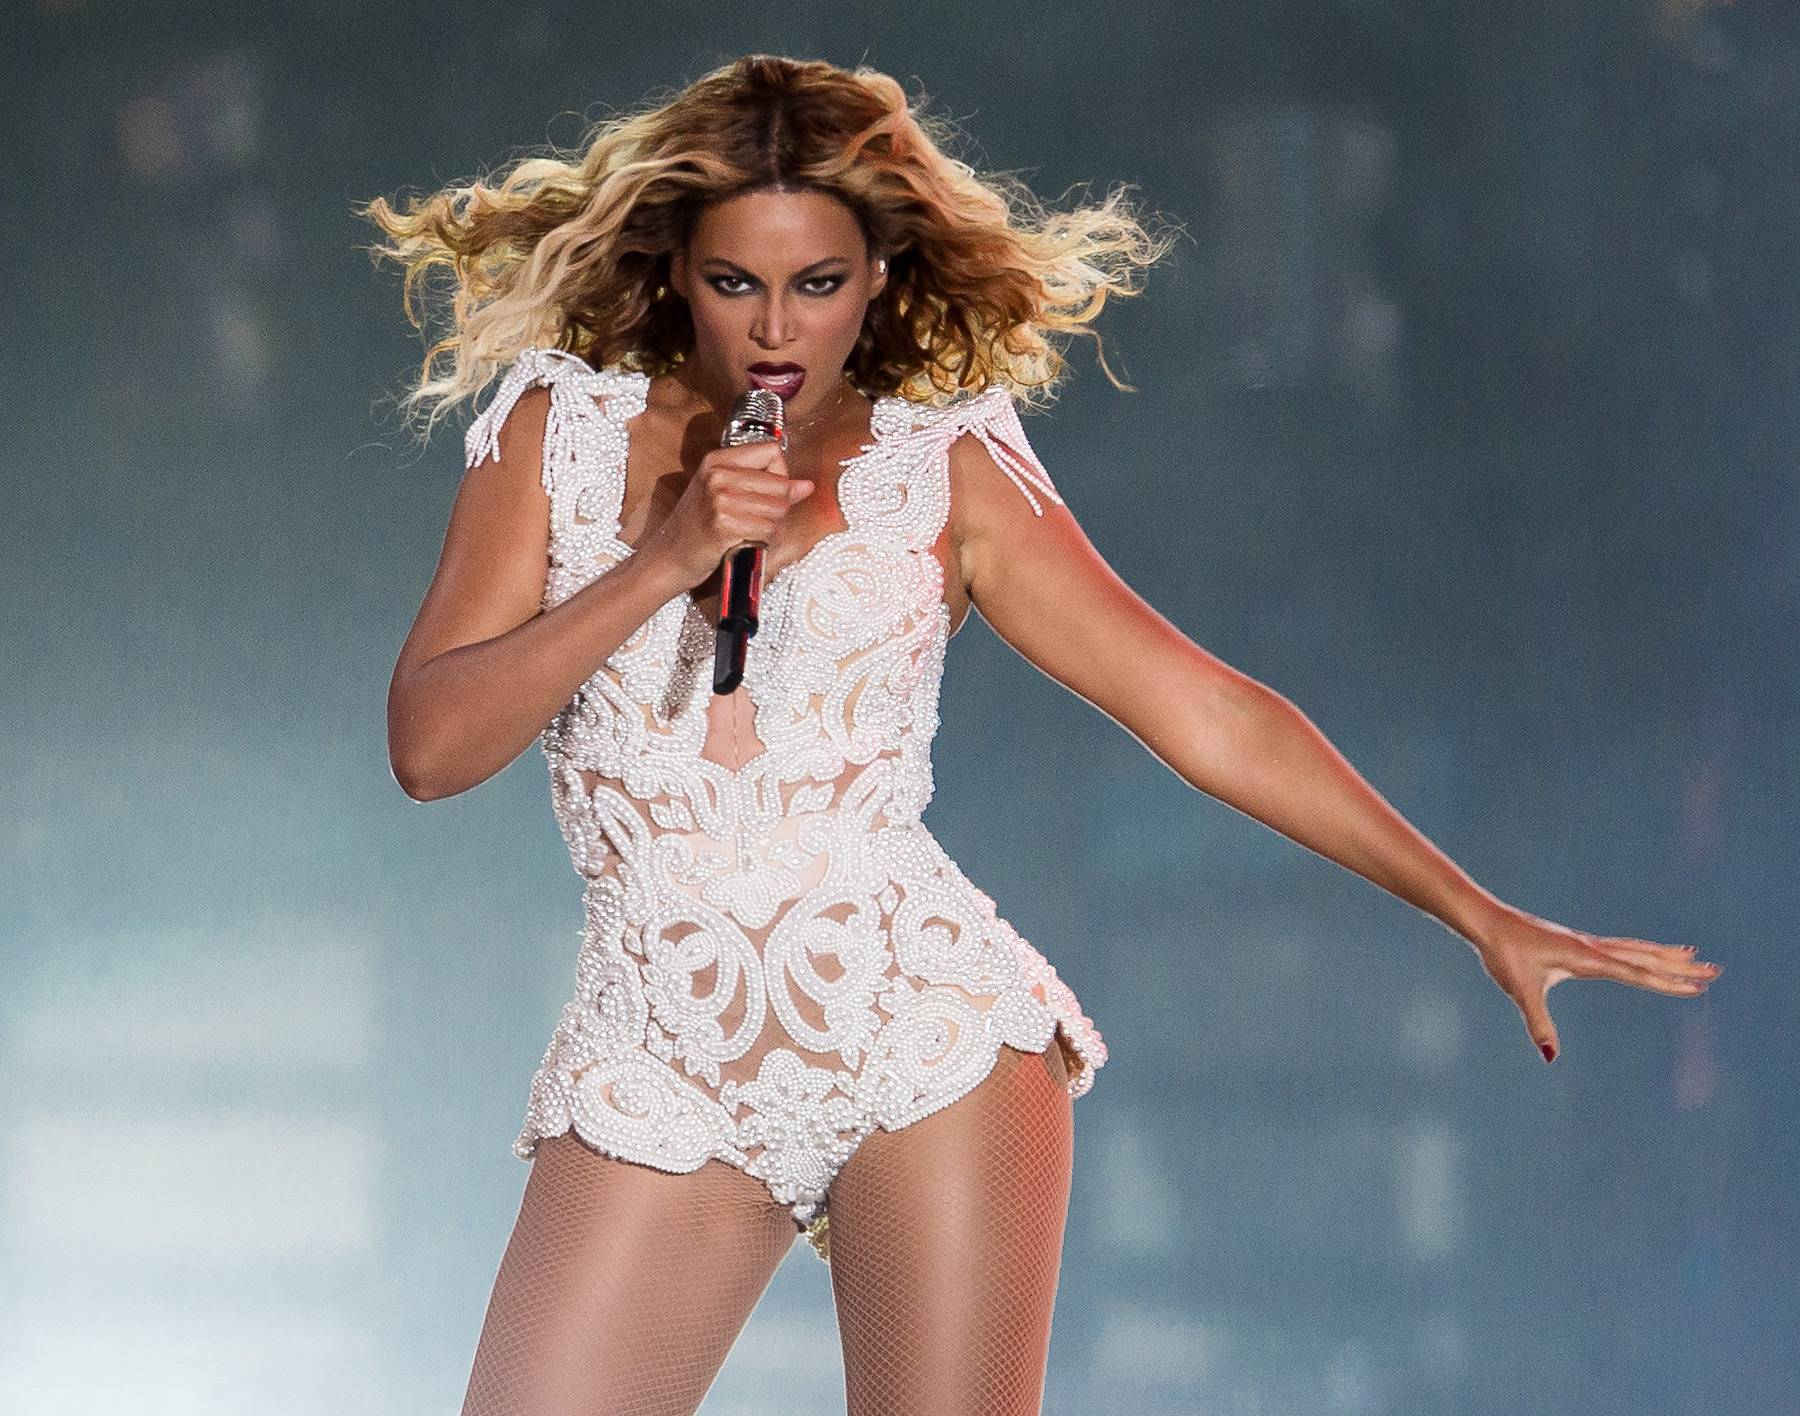 Body Snatcher - When Beyonc? reached into the audience to touch someone in the crowd in Sao Paulo, Brazil, she got more than she bargained for. One overzealous, shirtless fanatic took hold of her with a two-armed hug and pulled her off the stage. (She never stopped singing, though.)(Photo: Buda Mendes/Getty Images)